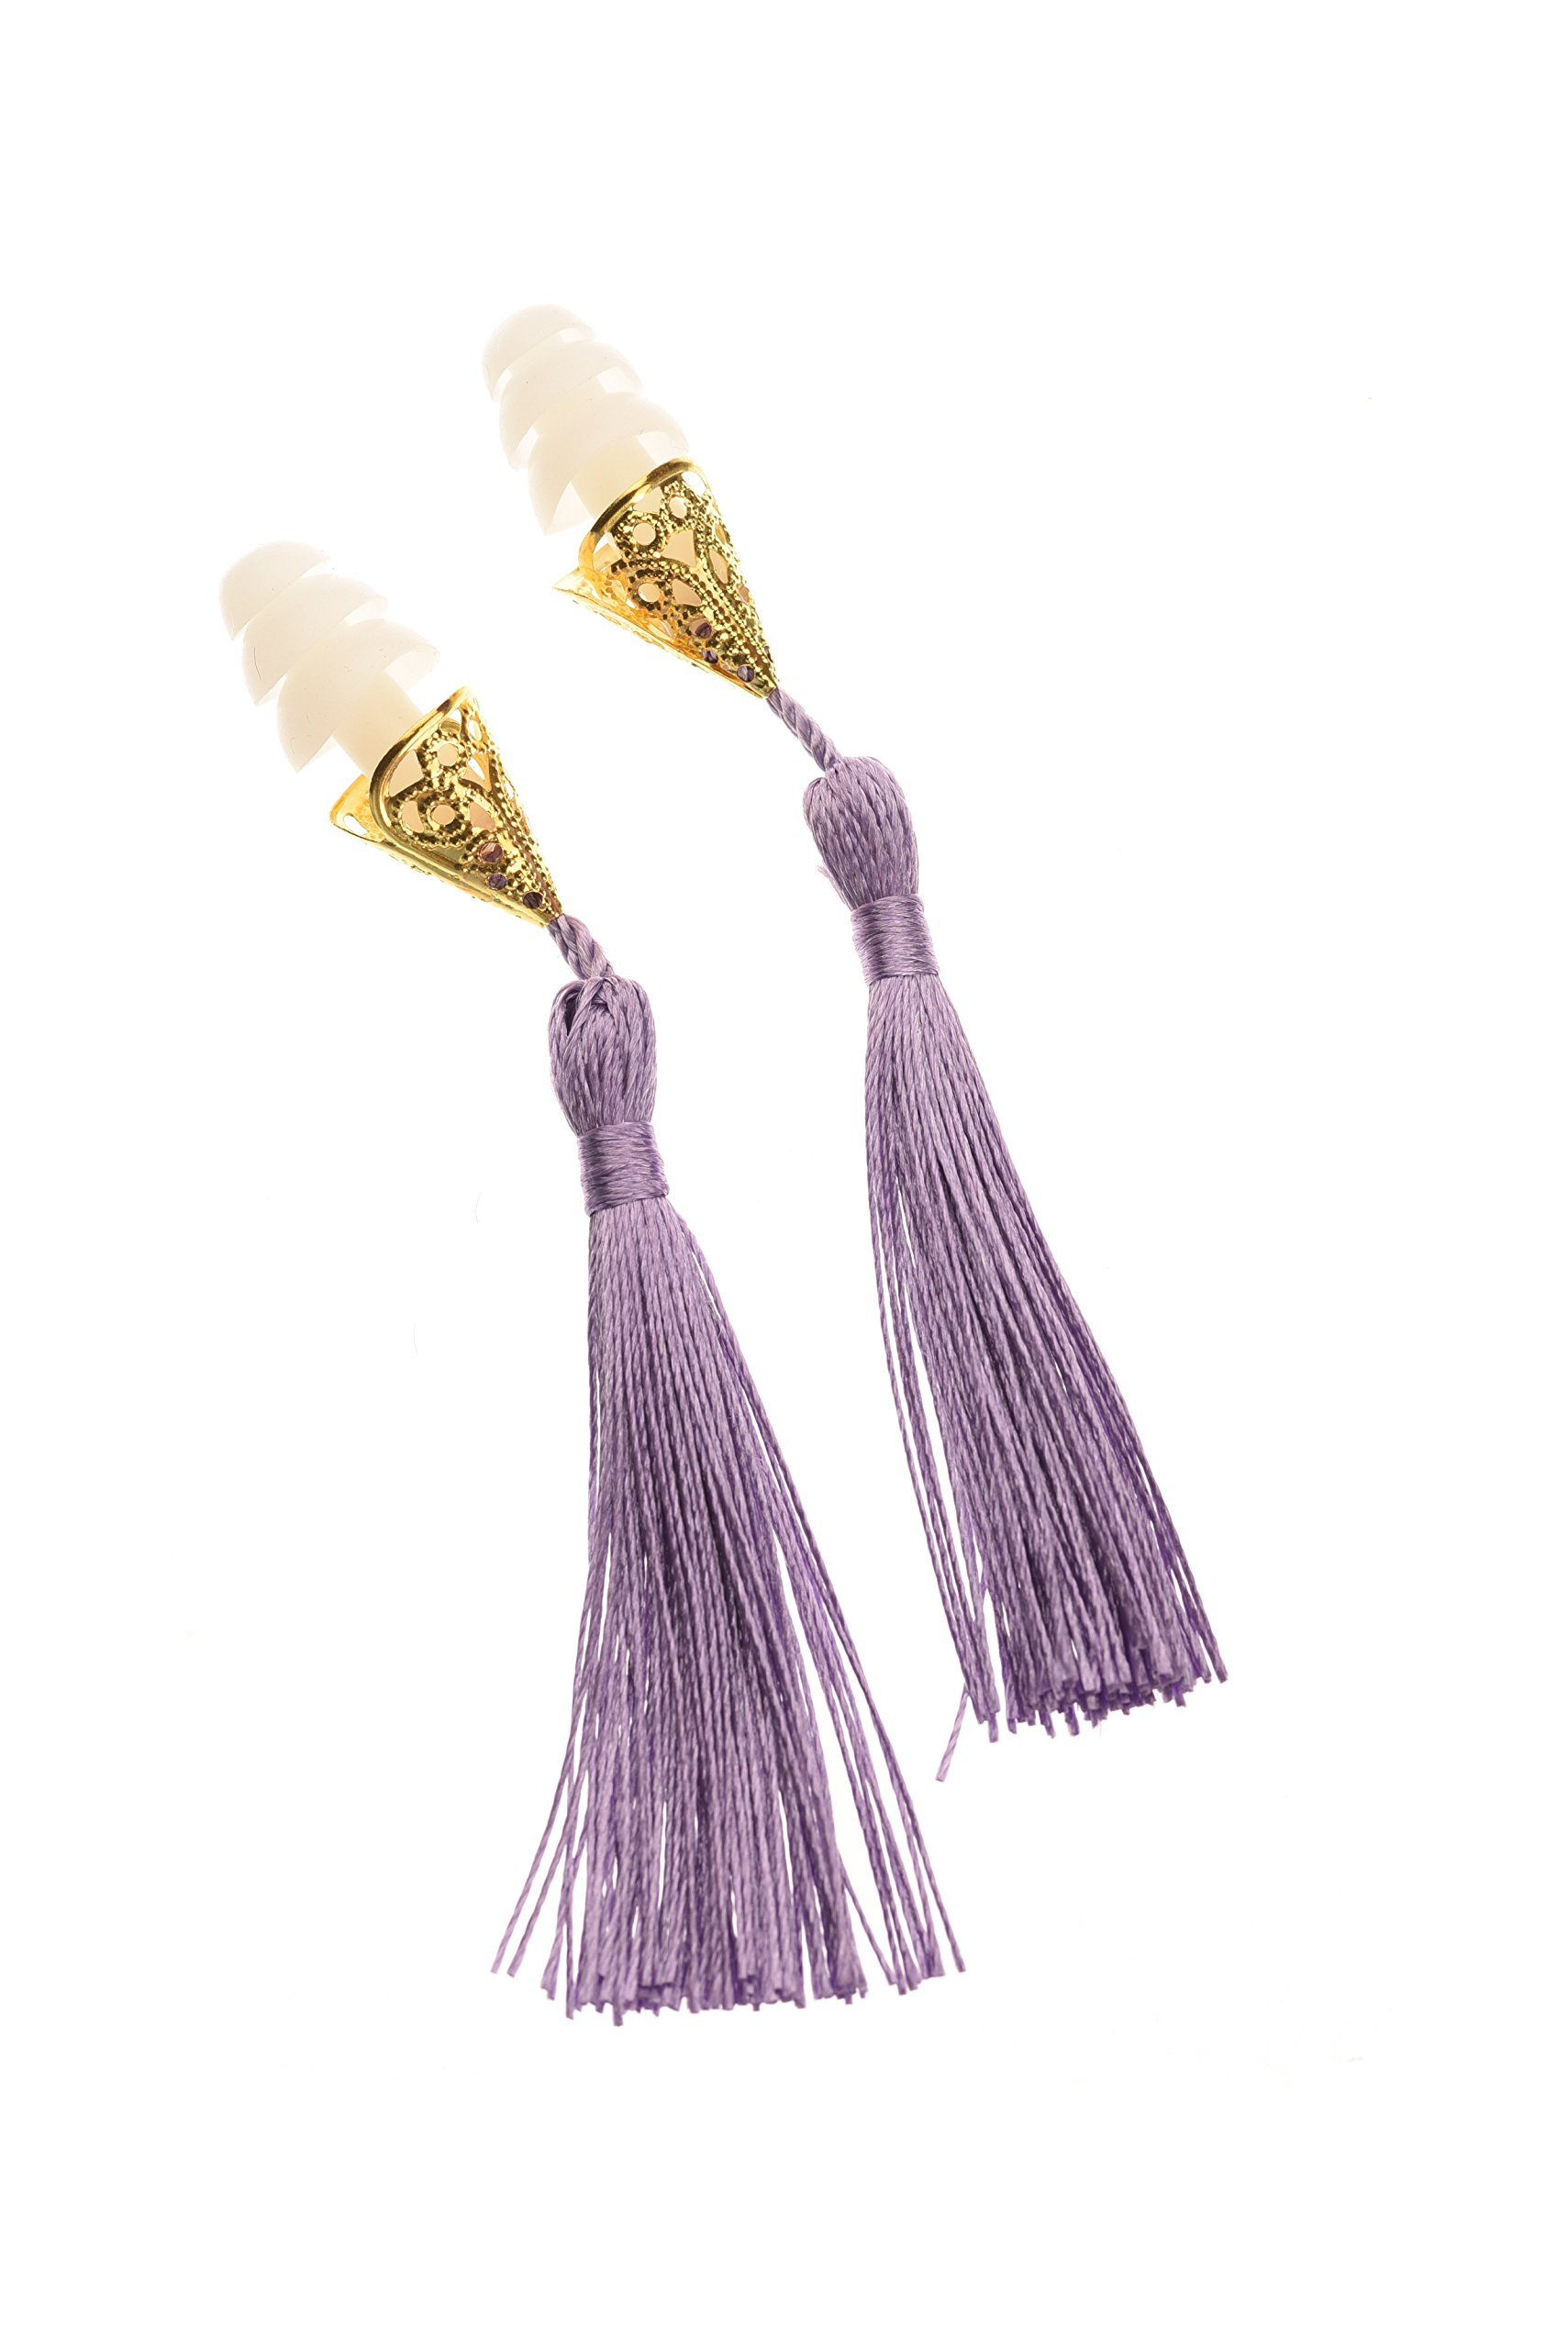 Breakfast at Tiffany's Inspired Tassel Earplugs in Lavender Holly Golightly